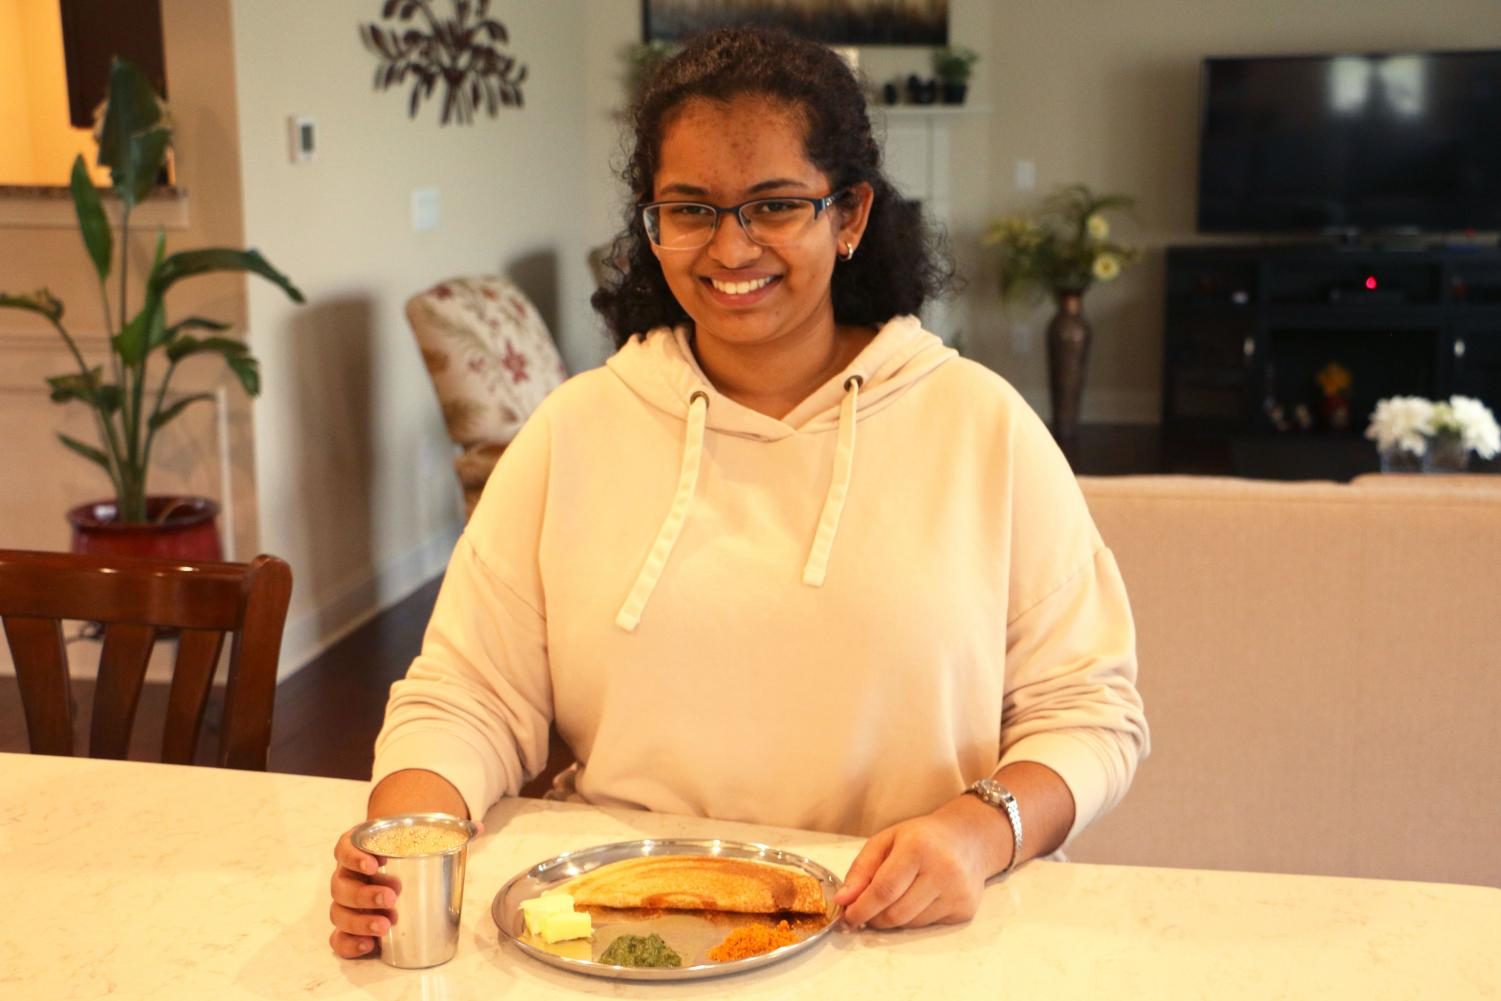 Senior Sneha Srivasta poses with traditional Indian food from her culture. She says that although she has adapted to the differences in culture in the United States, her family still eats traditional food like dosa which is an Indian bread that has been incorporated as the United States diversifies its culture.